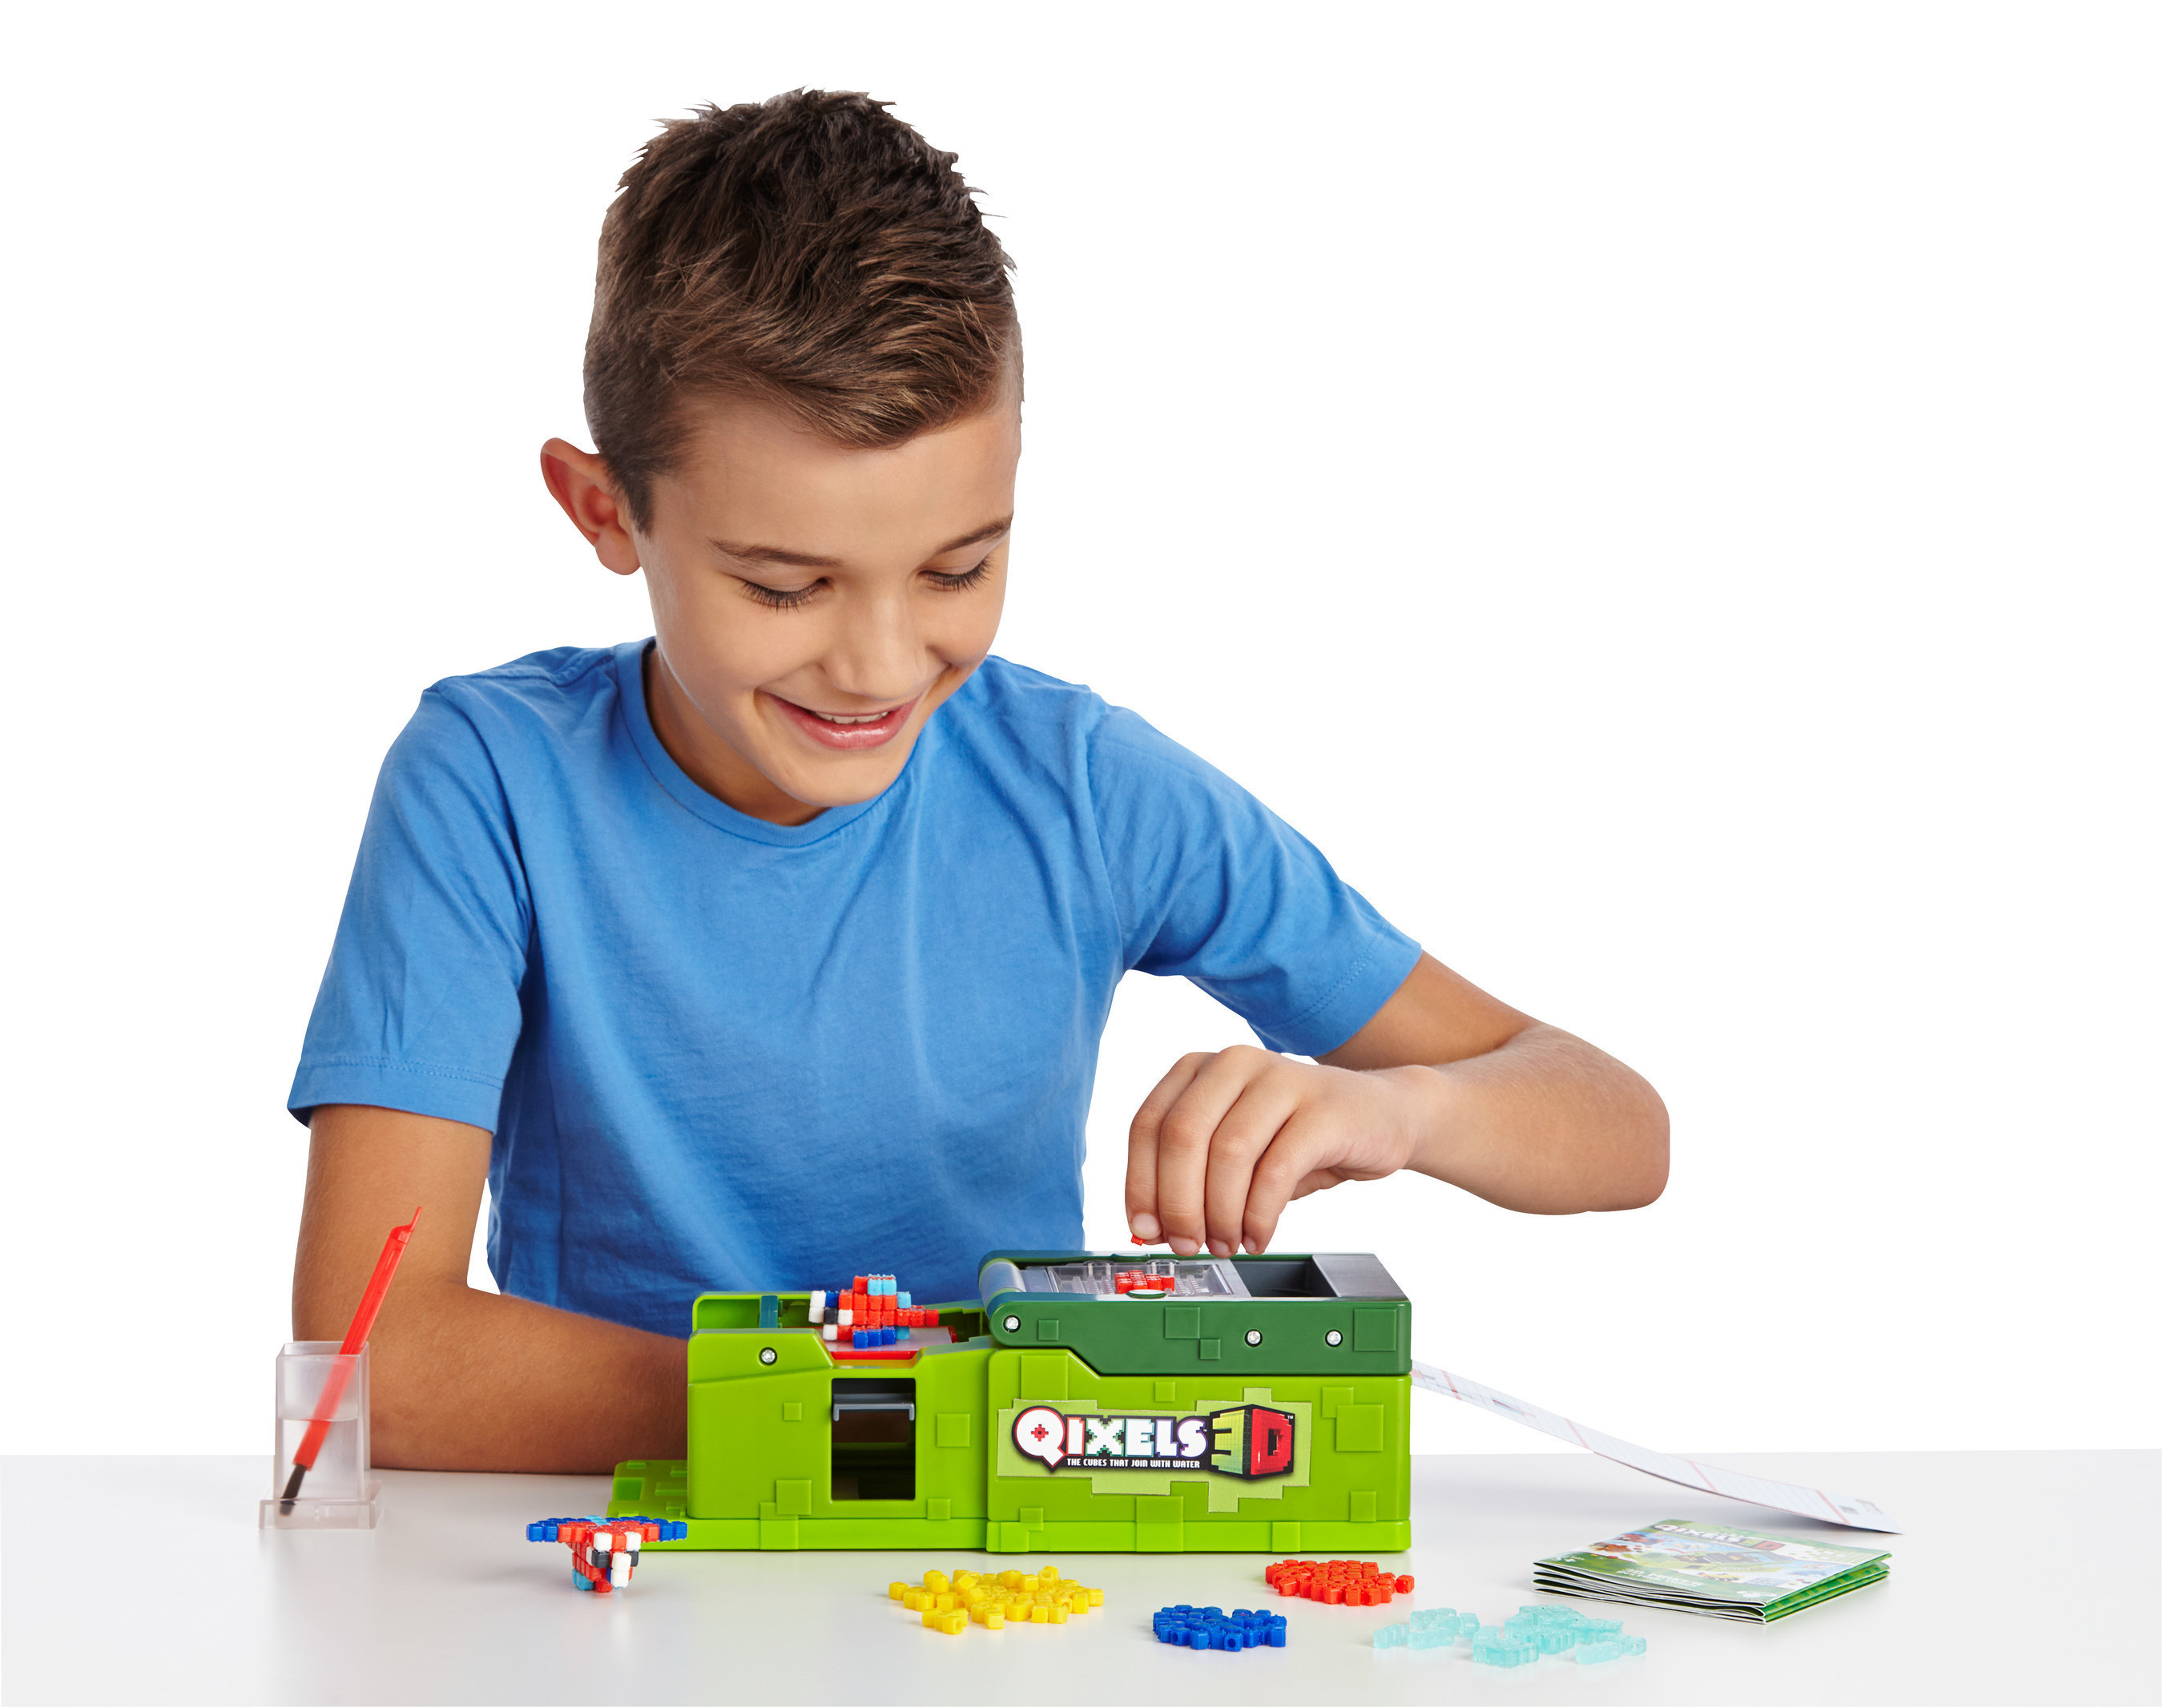 Moose Toys expands the popular Qixels line with the launch of the new Qixels 3D Maker, a unique tool that lets kids create three-dimensional, pixelated designs of their favorite animals, space ships, bugs, monsters and more.